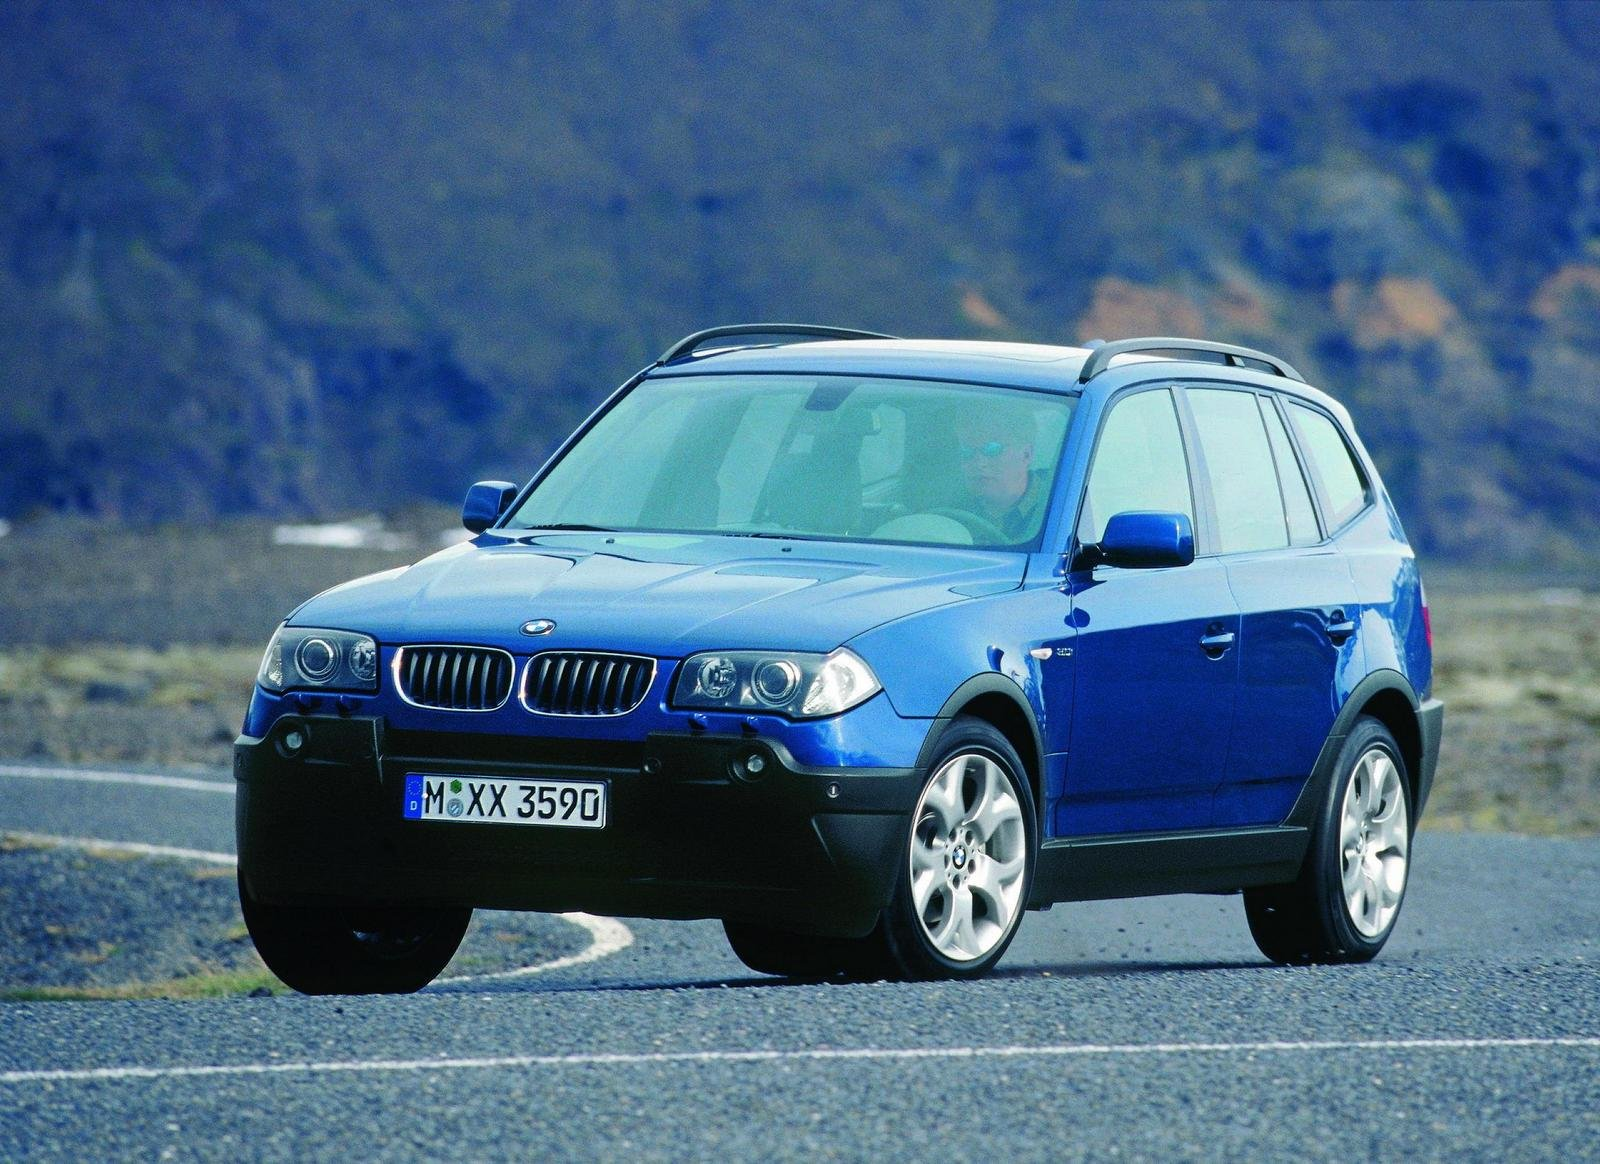 2010 bmw x3 ii picture 219643 car review top speed. Black Bedroom Furniture Sets. Home Design Ideas